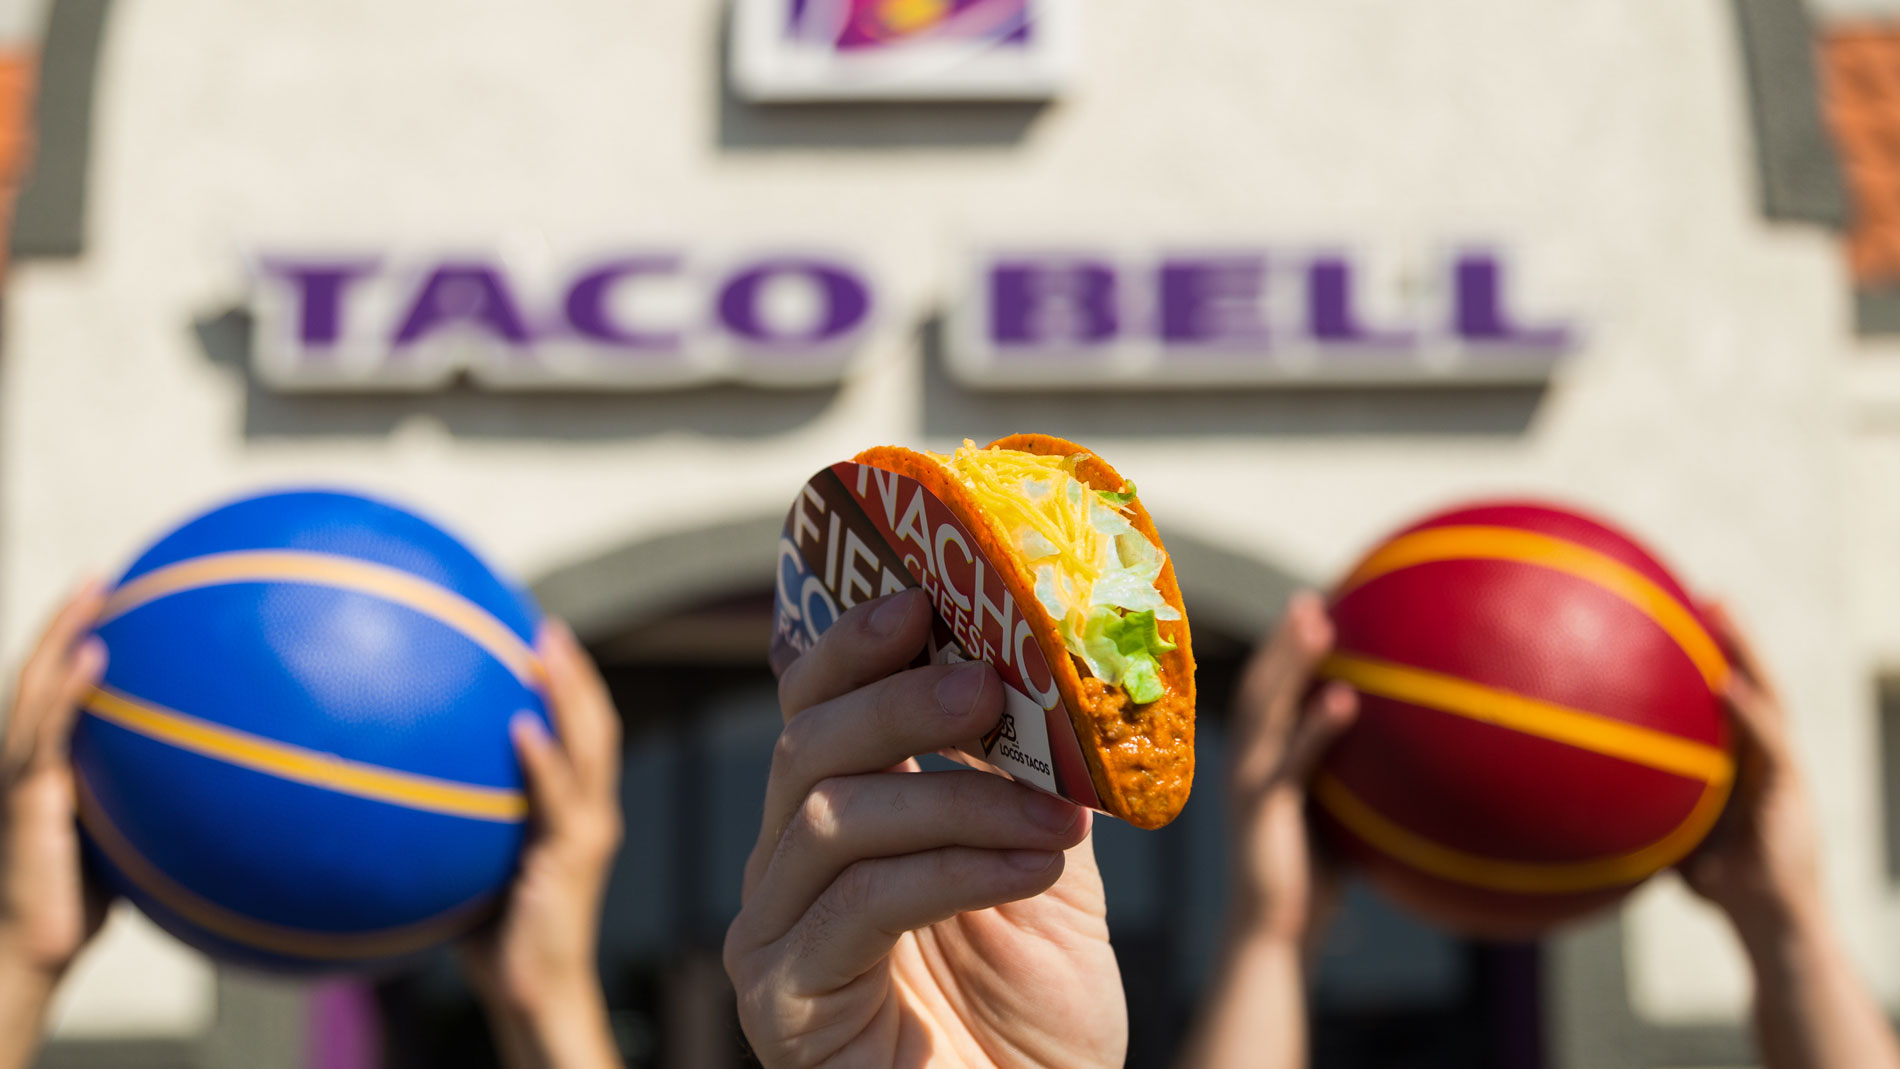 congratulations we all just won free tacos at taco bell on june 13